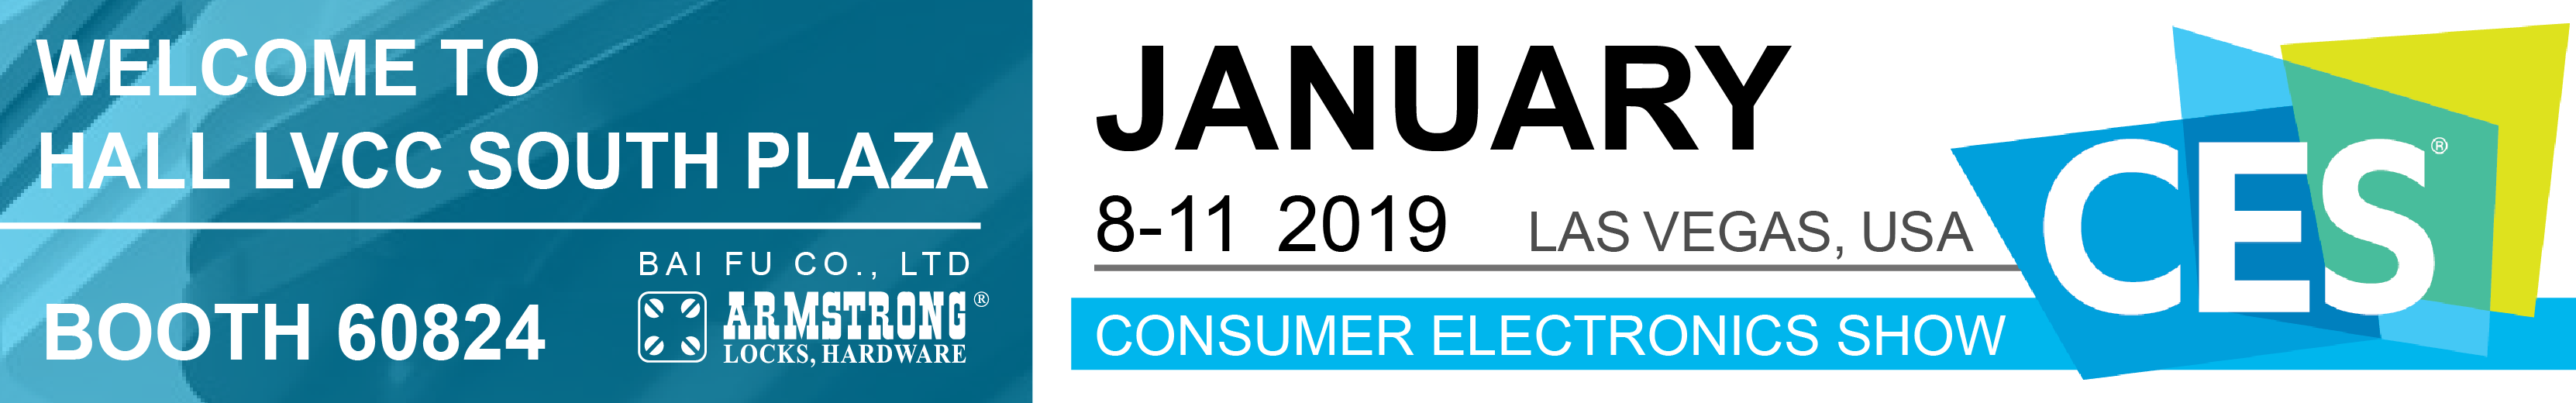 2019-ces-banner.png